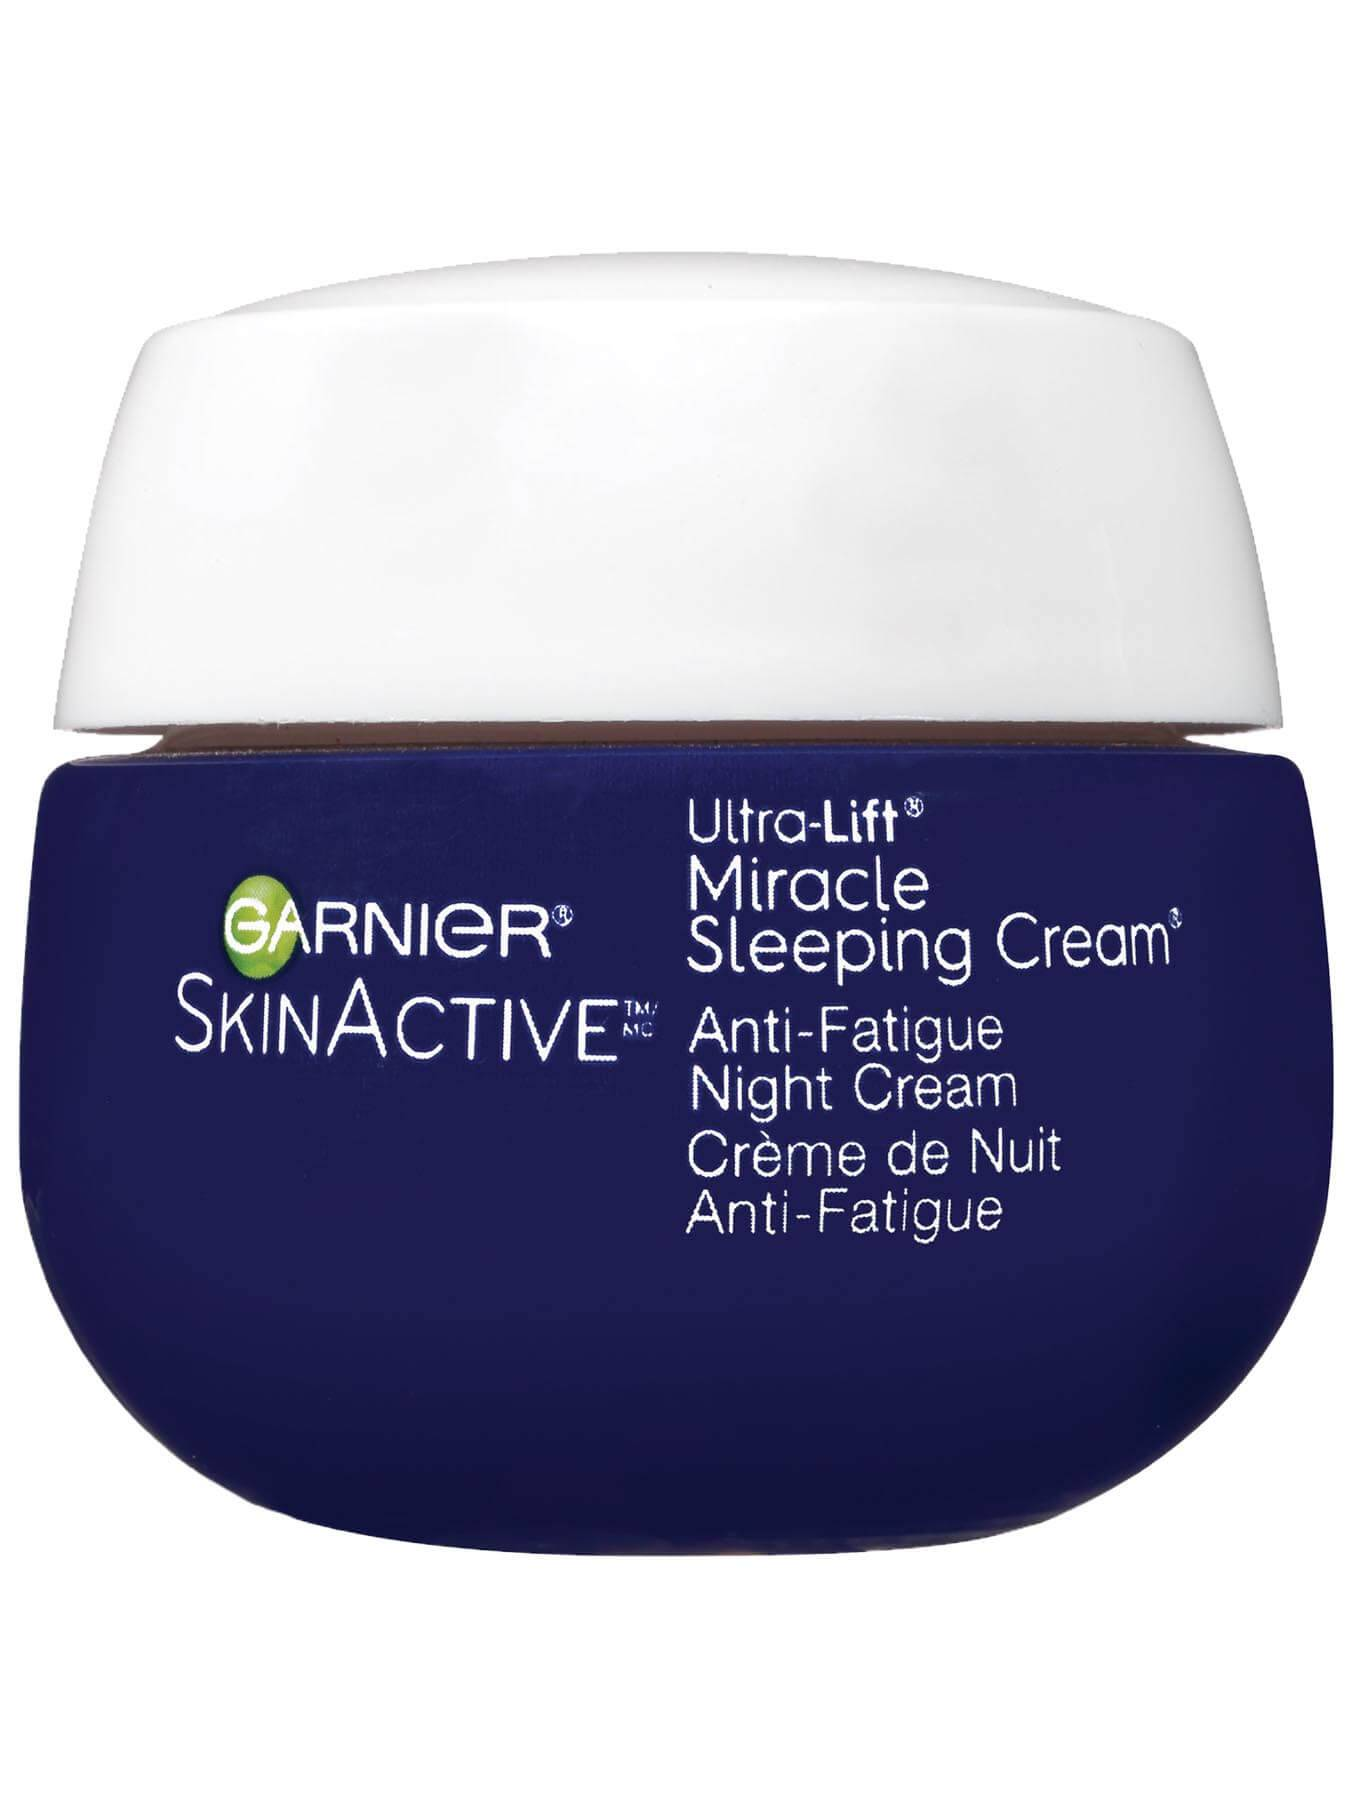 Garnier SkinActive Ultra Lift Miracle Sleeping Cream Anti-Age + Anti-Fatigue Night Cream